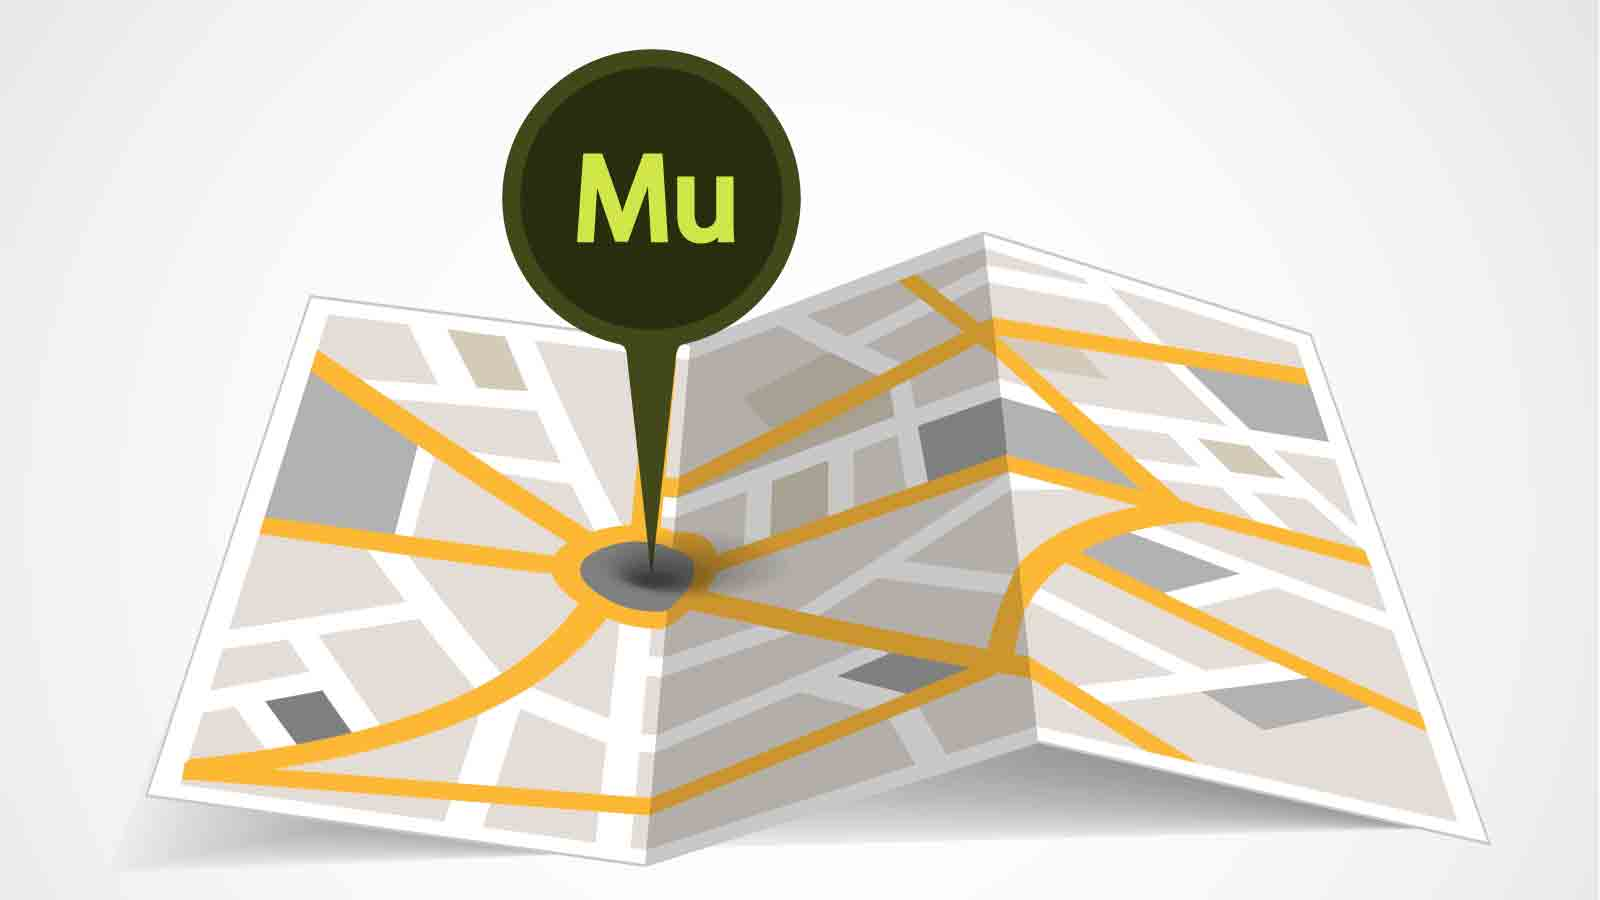 Learn more about the Add local SEO to Adobe Muse Adobe Muse widget